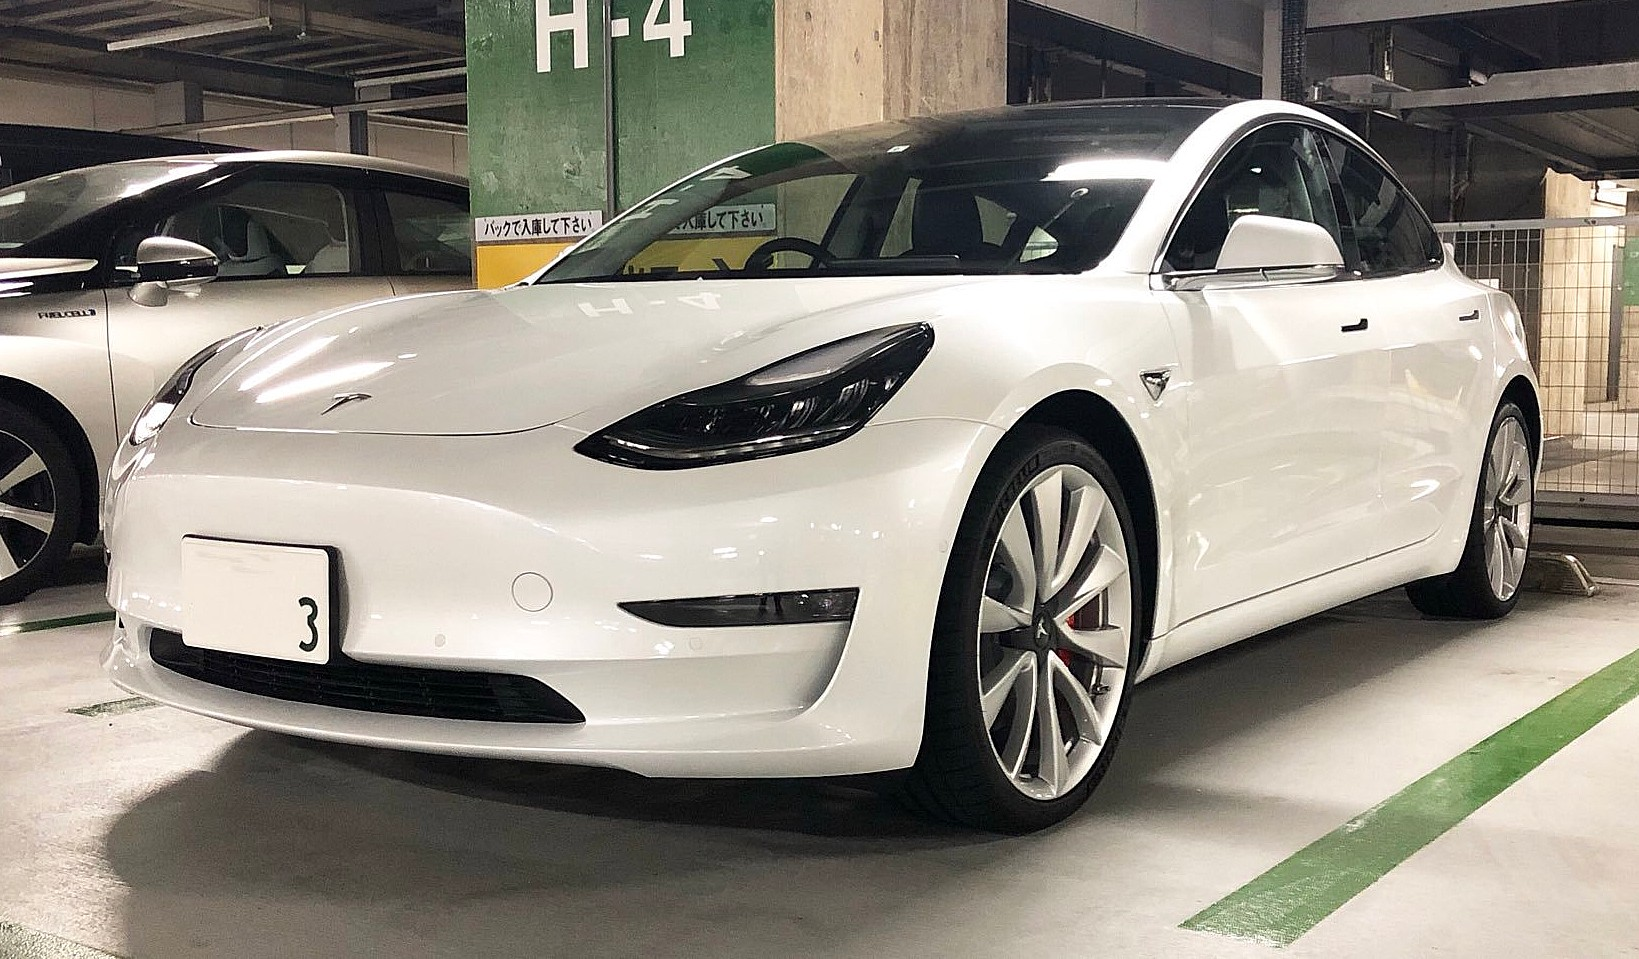 Tesla's Hardware 3 computer frightens legacy auto after Model 3 teardown: 'We cannot do it'